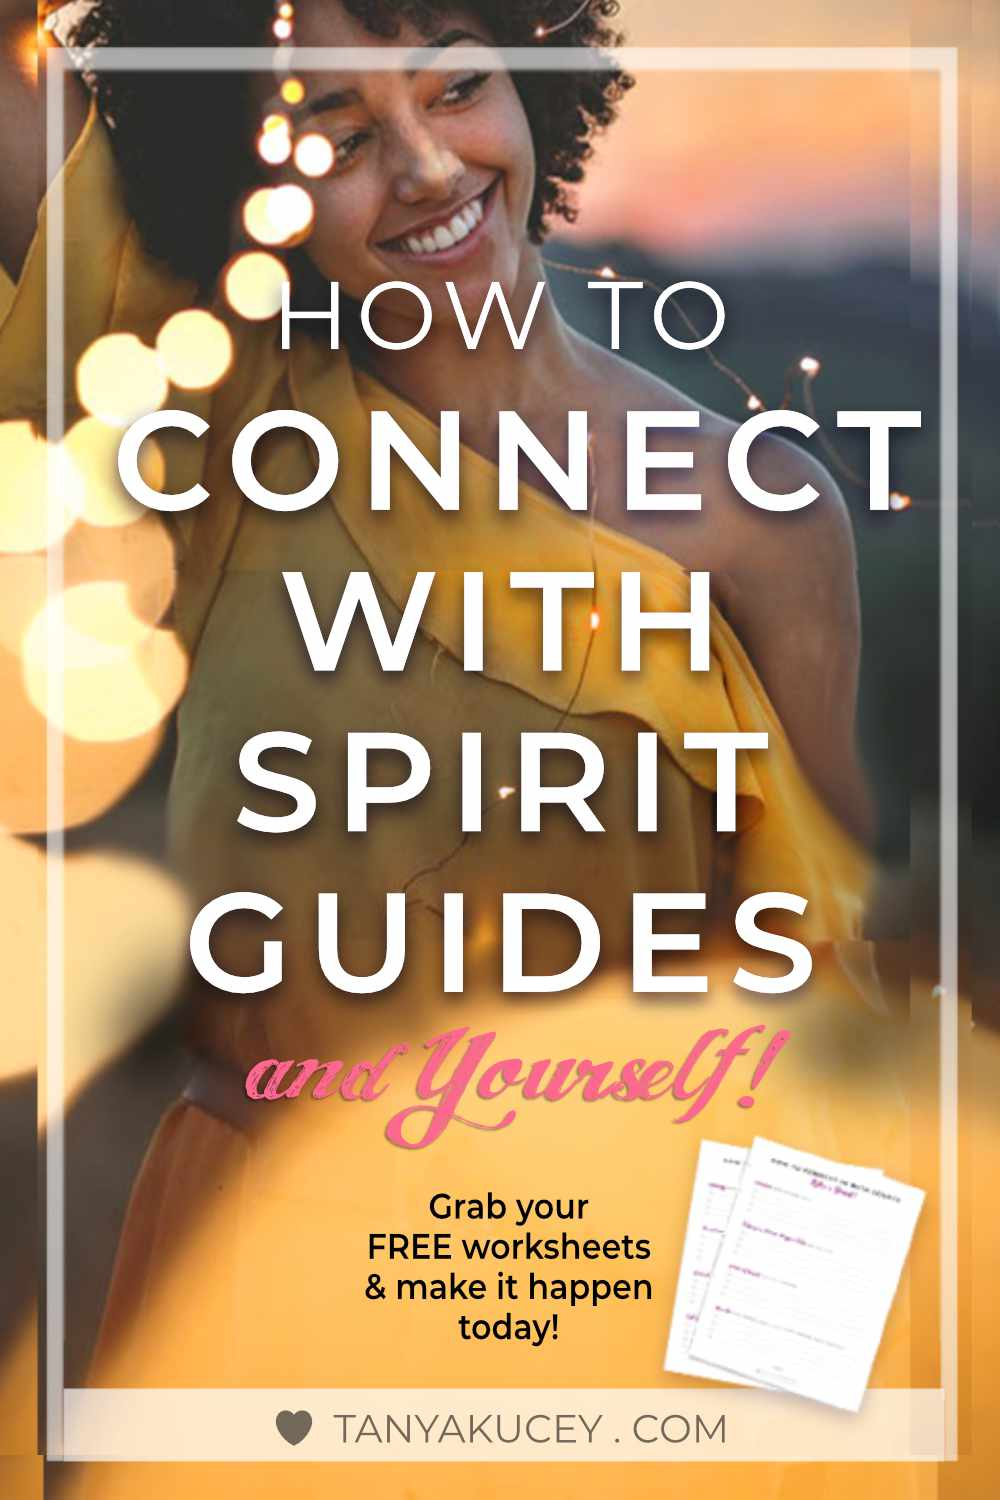 How to Connect with Spirit. FREE worksheets to make it happen today. How to connect with spirit, how to connect, how to get unblocked, tips to talk with spirit, relationships, All That Is, Spirit guides, how to get back in the flow.